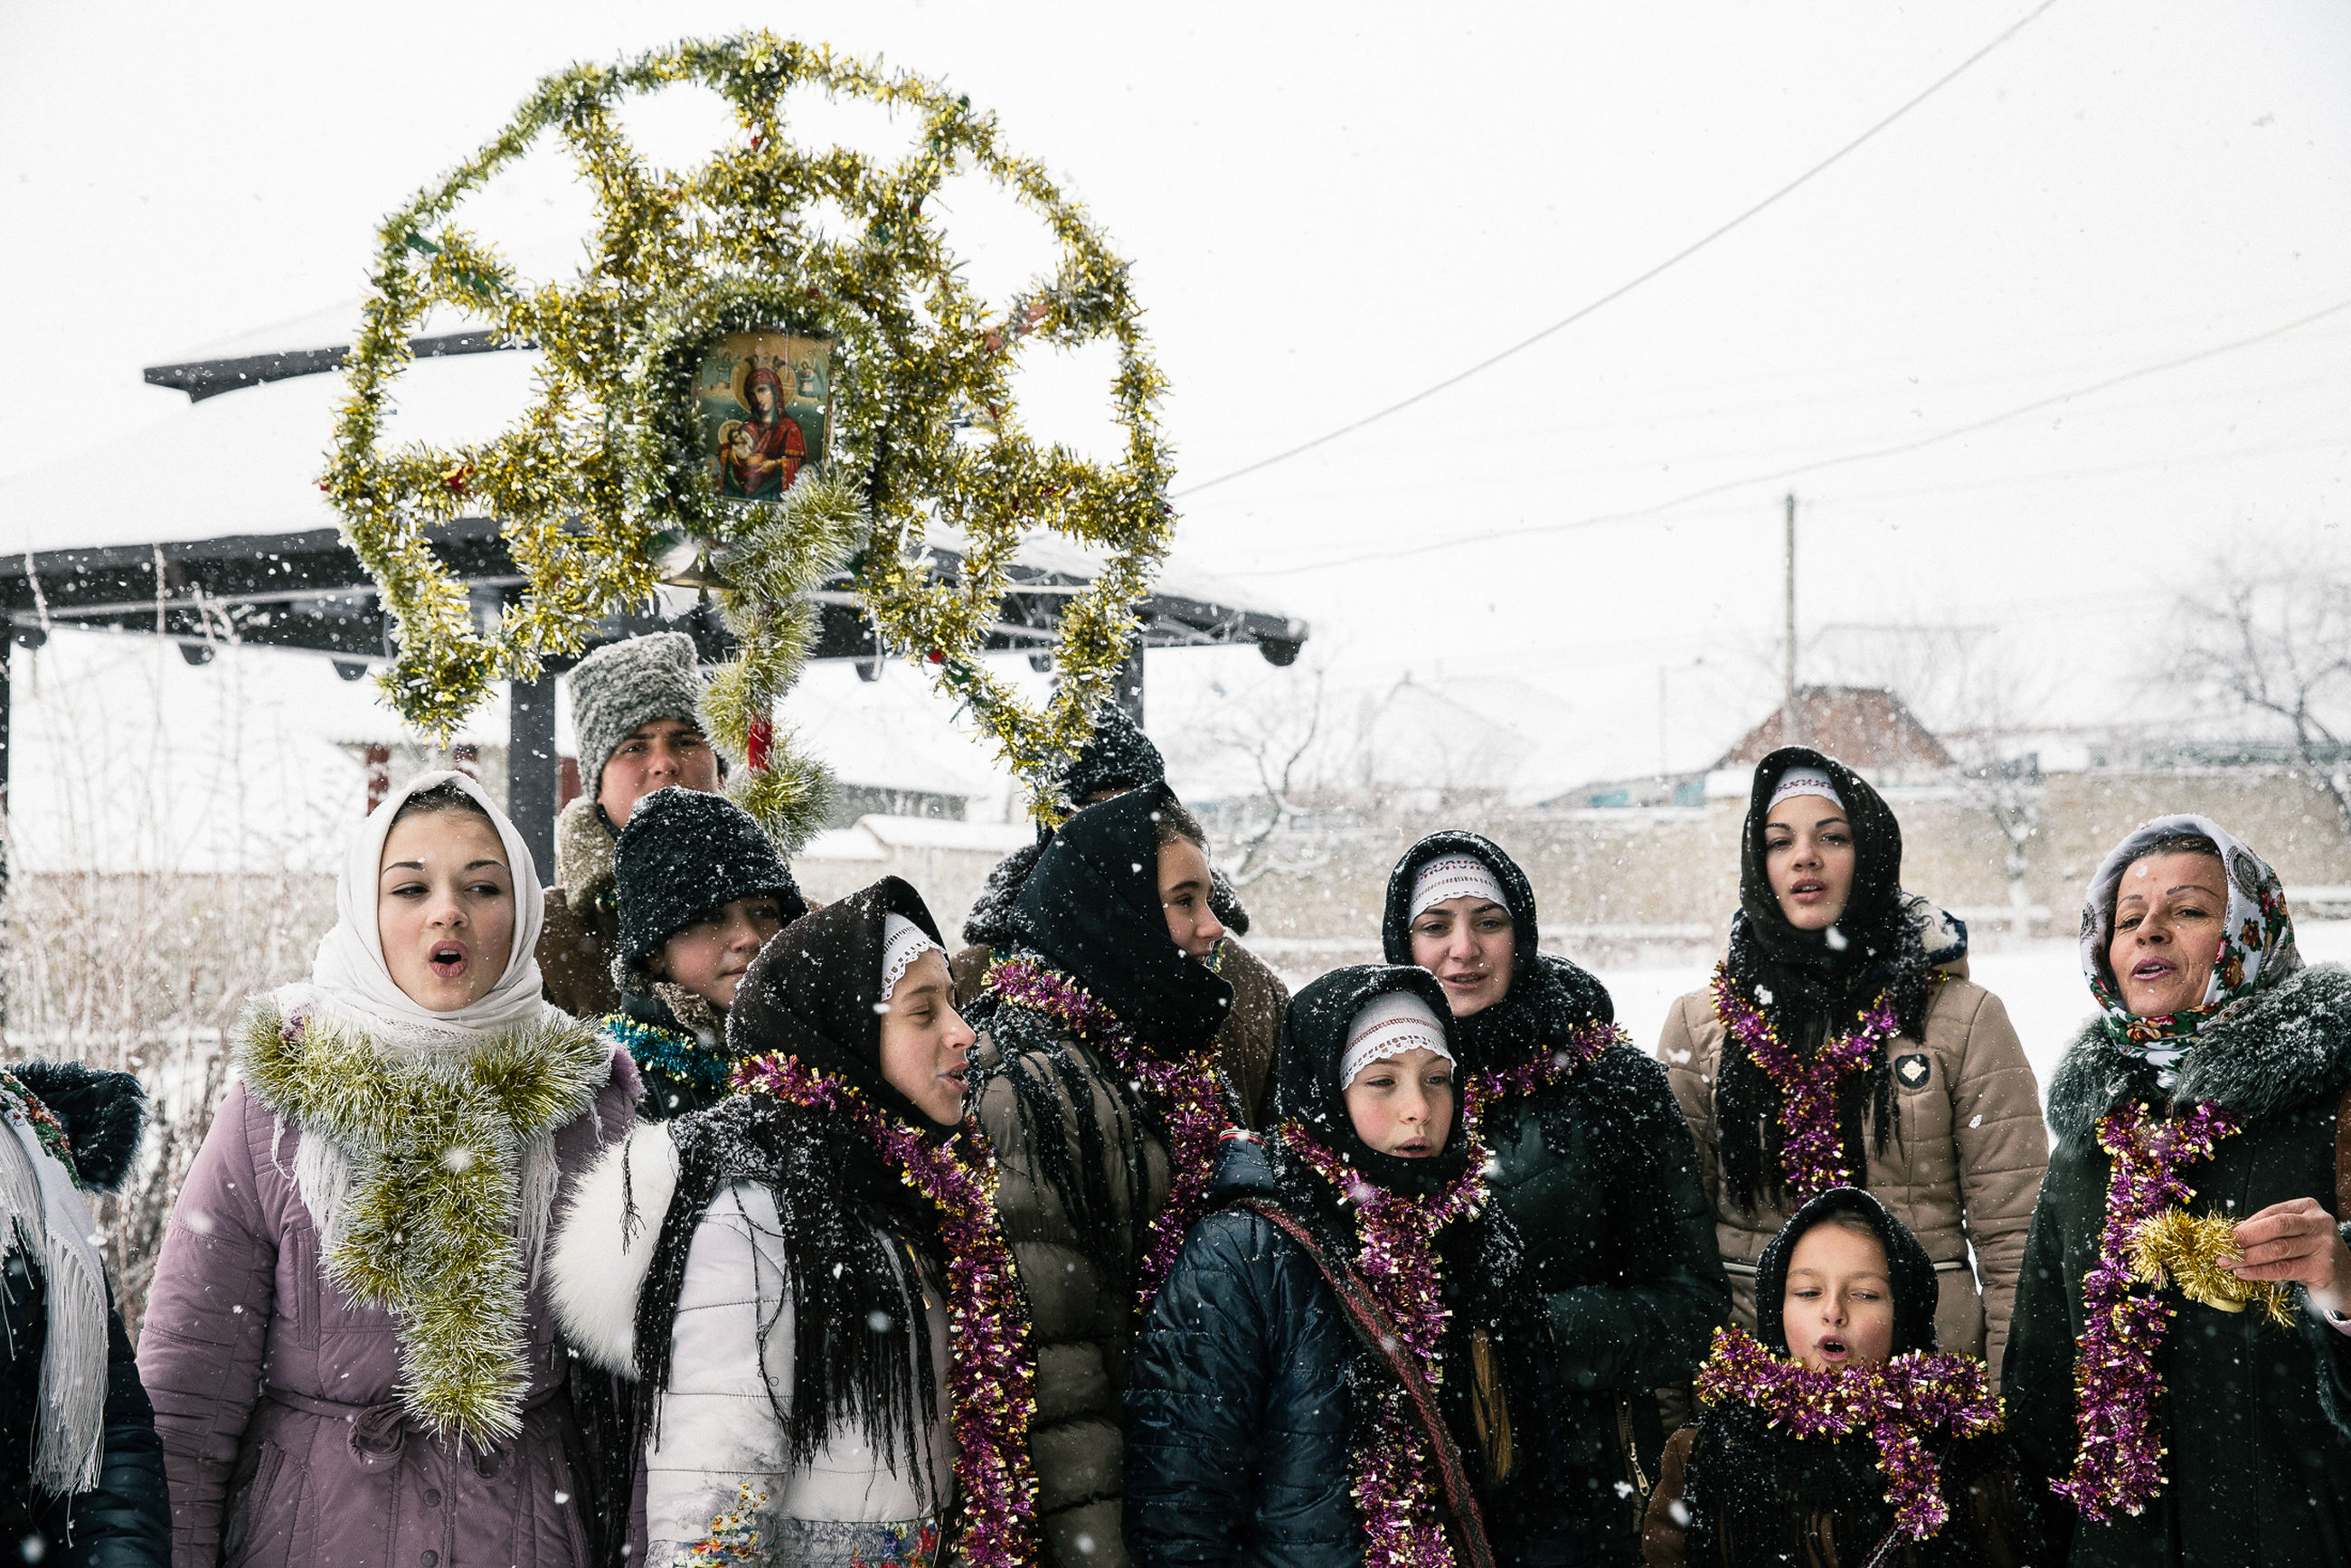 real people, celebration, group of people, winter, young adult, women, clothing, warm clothing, event, people, cold temperature, emotion, happiness, nature, young women, snow, lifestyles, decoration